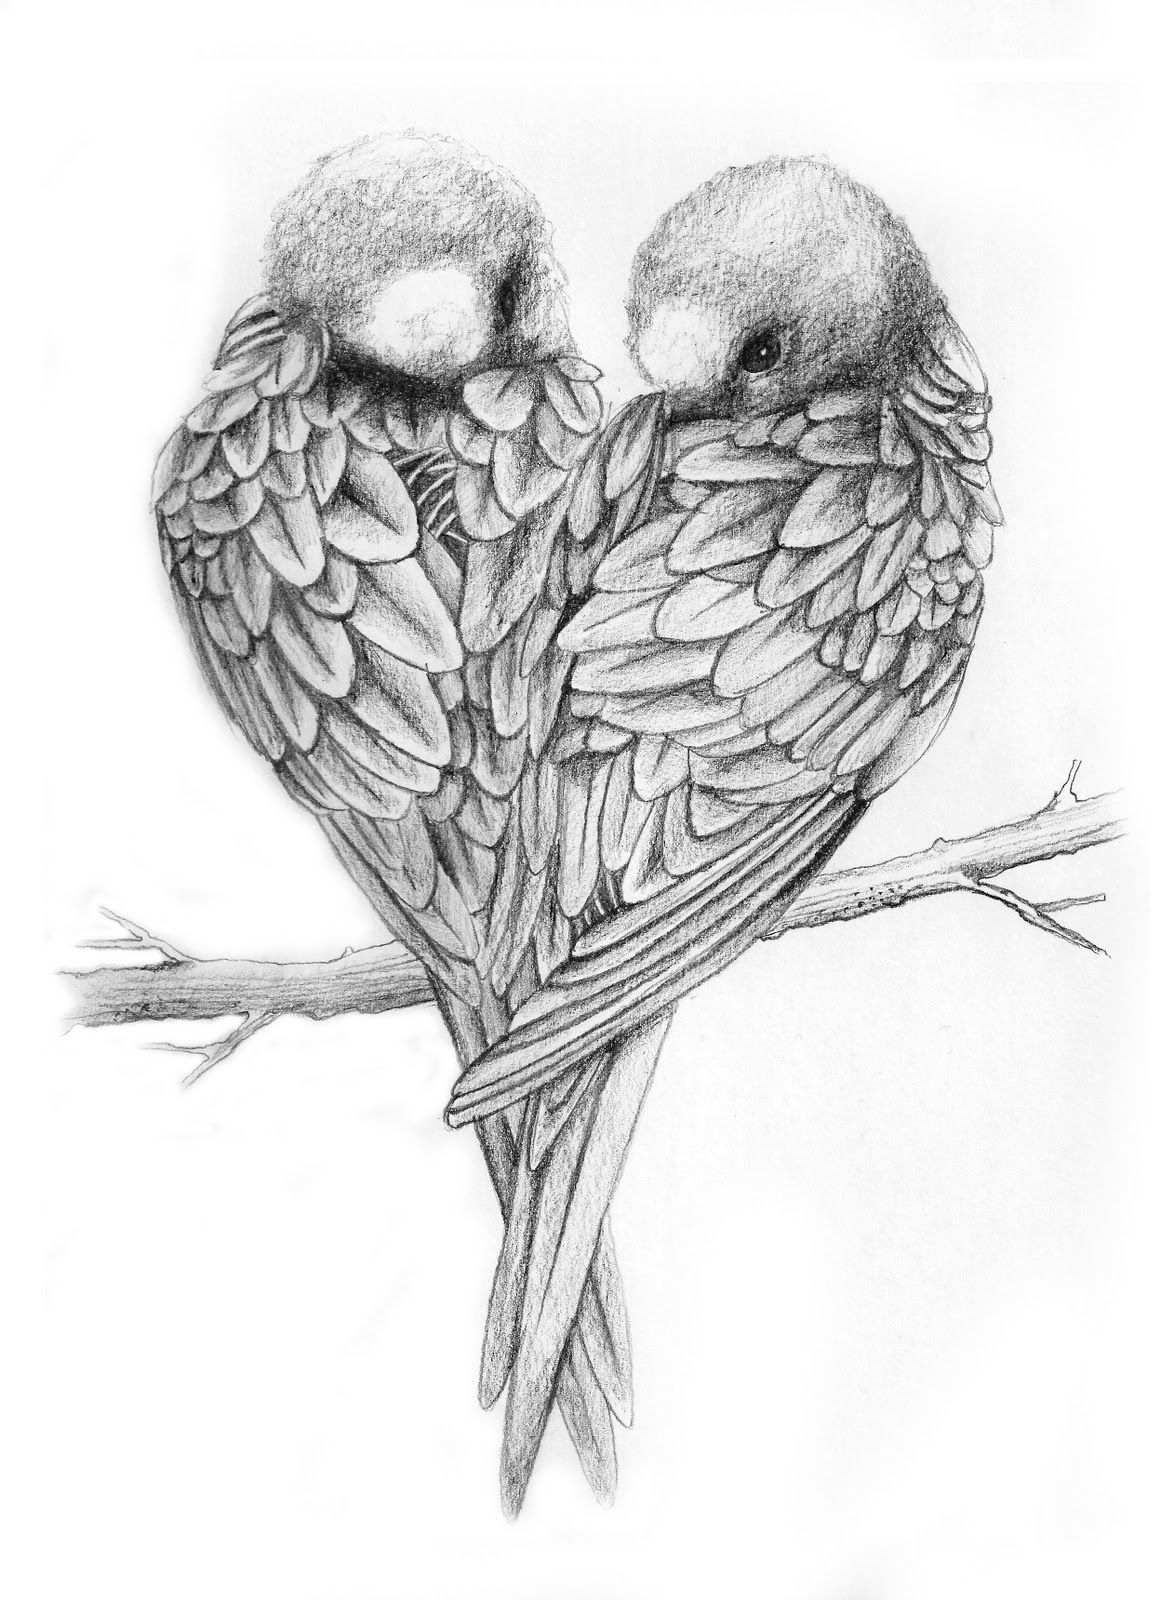 Drawings Of Love Birds | Love Birds Drawing Love Birds U2665 | Things To Draw | Pinterest | Bird ...